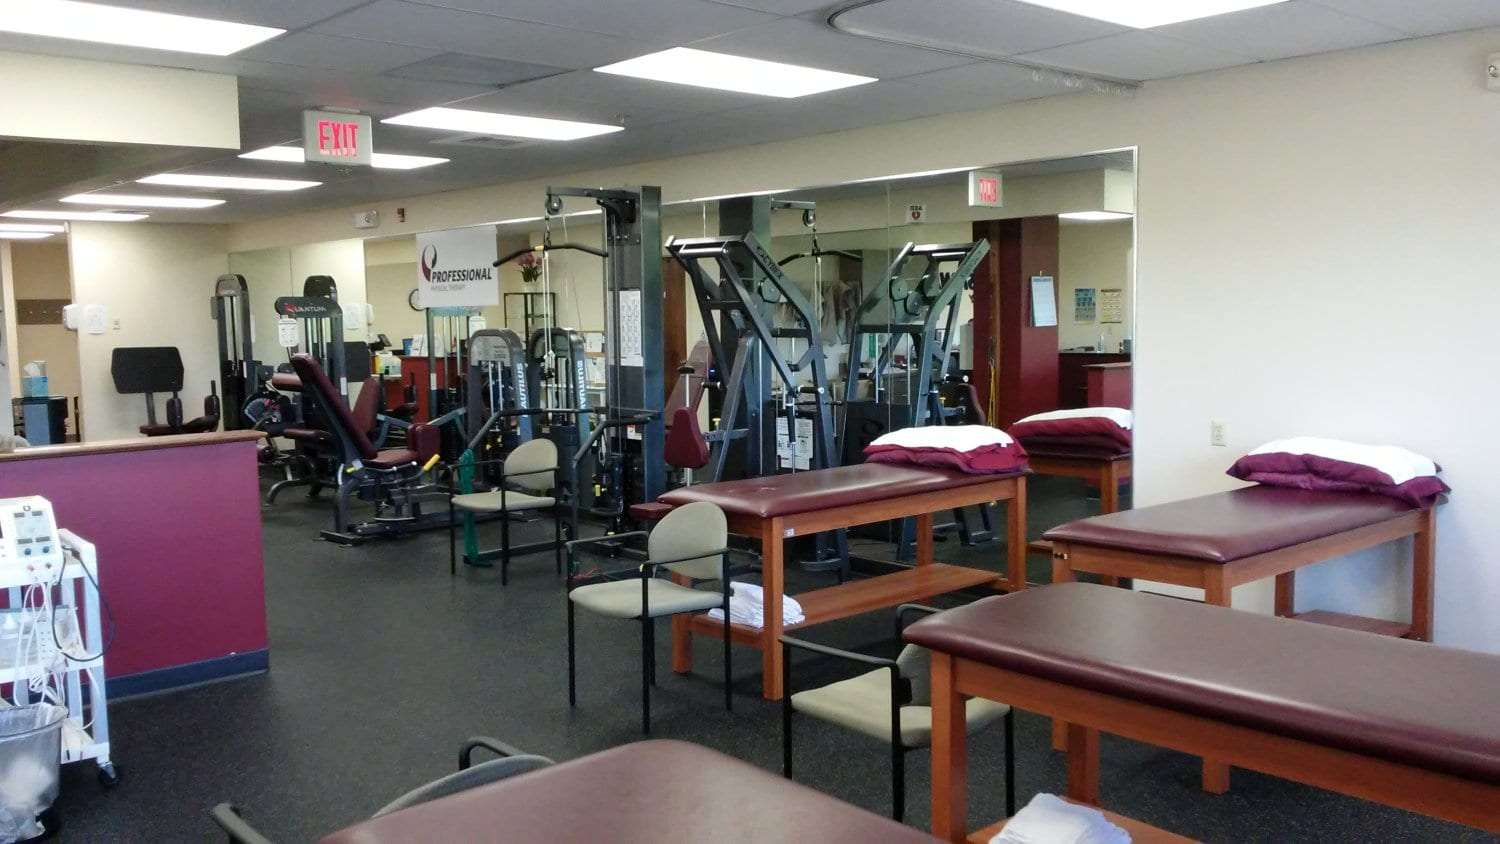 Here is an image of the interior of our physical therapy clinic in Newton, New Jersey.